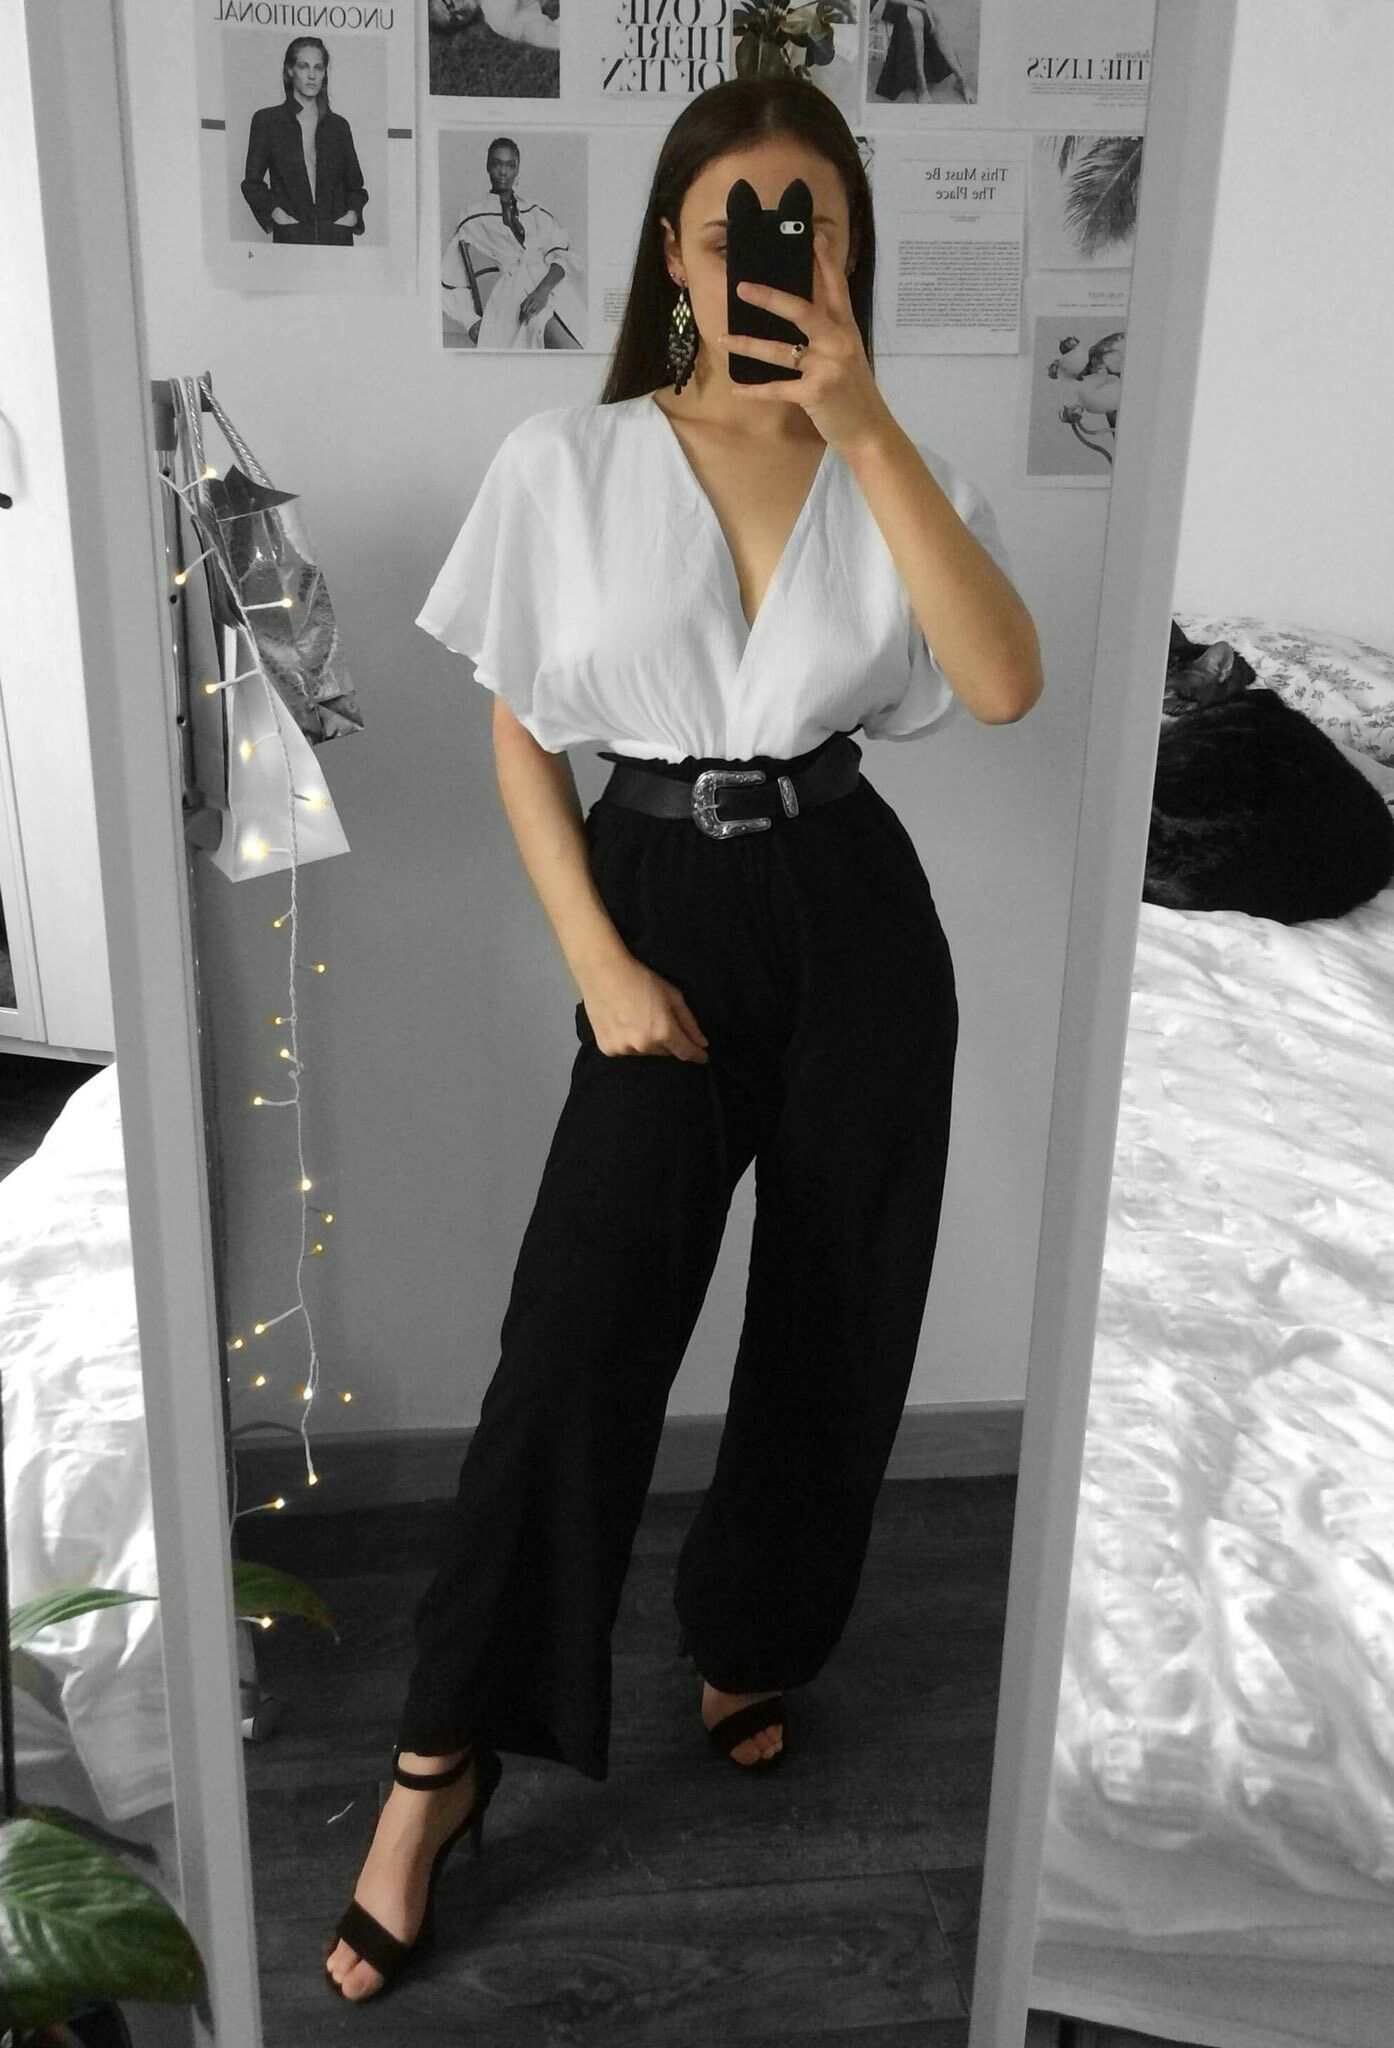 Loose wrap top with flared sleeves a high waisted belted but loose pants.  Belt style. Ankle strapped heels. 0bc77c1e1